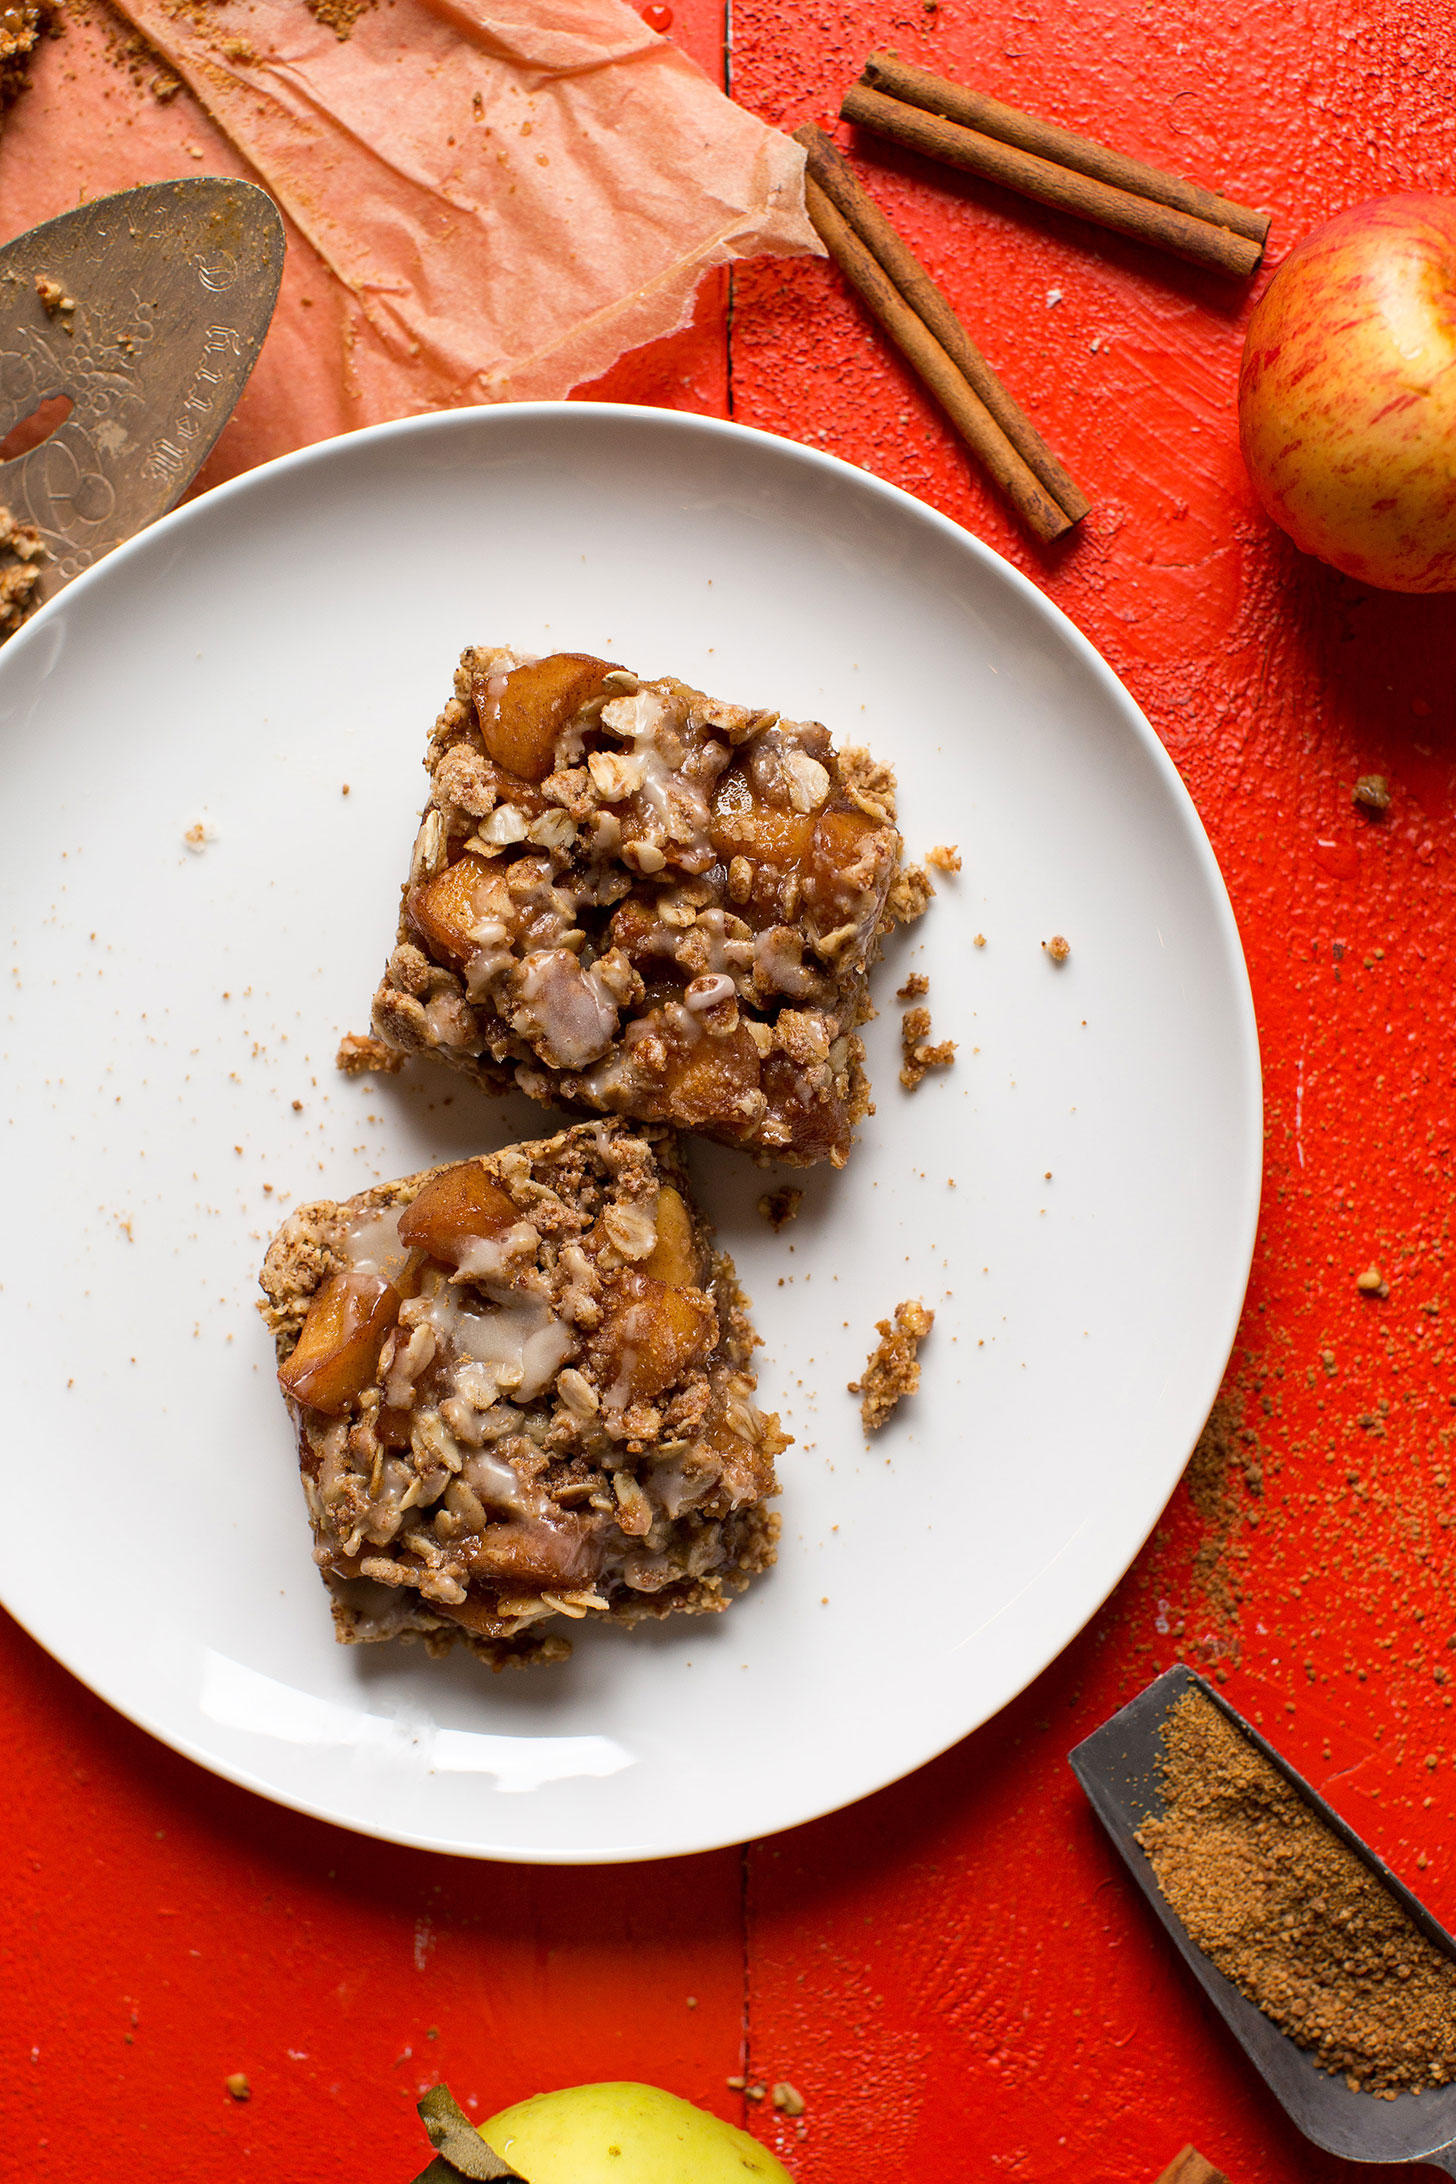 Two slices of Apple Pie Crumble Bars on a plate for a gluten-free vegan dessert recipe